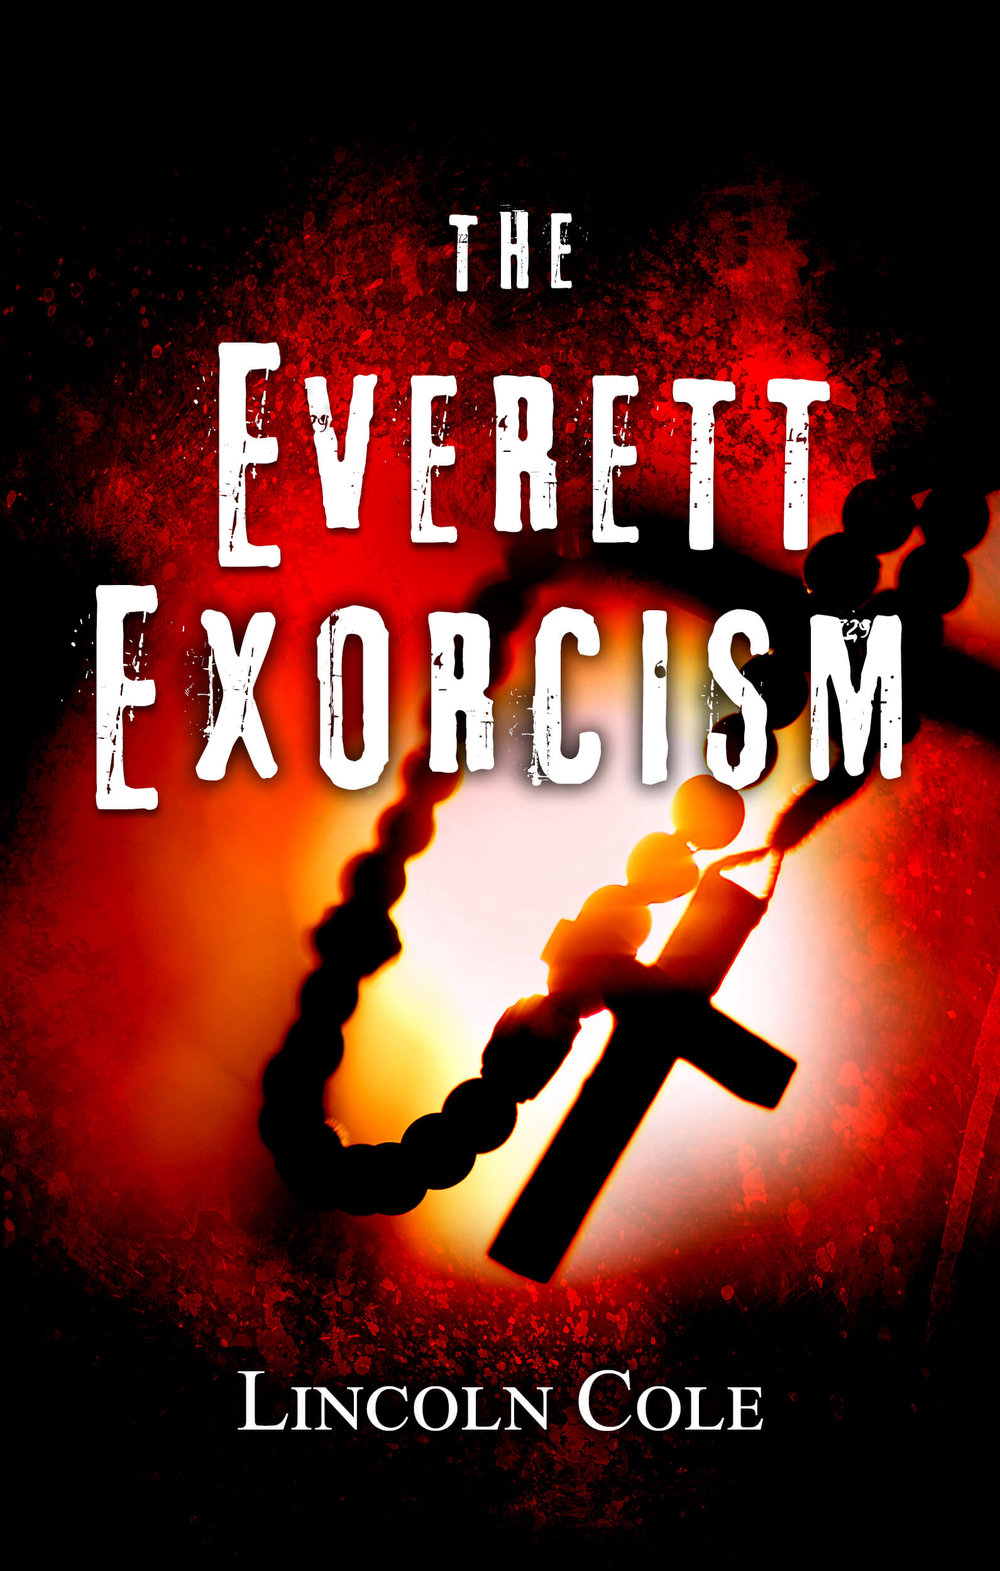 The Everett Exorcism - Books I and II are available and out now! The launch week went incredibly well and I sold almost 1,000 copies right off the bat. It will go up to full price in December, so this will be the last month for a while to get it on sale.